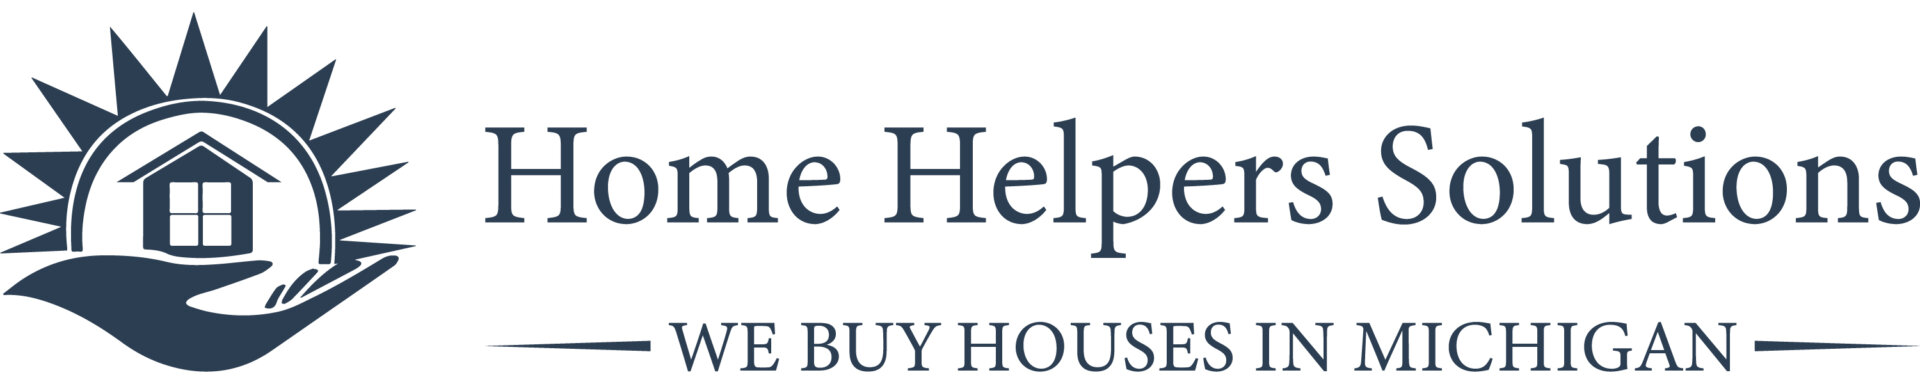 Home Helpers Solutions  logo